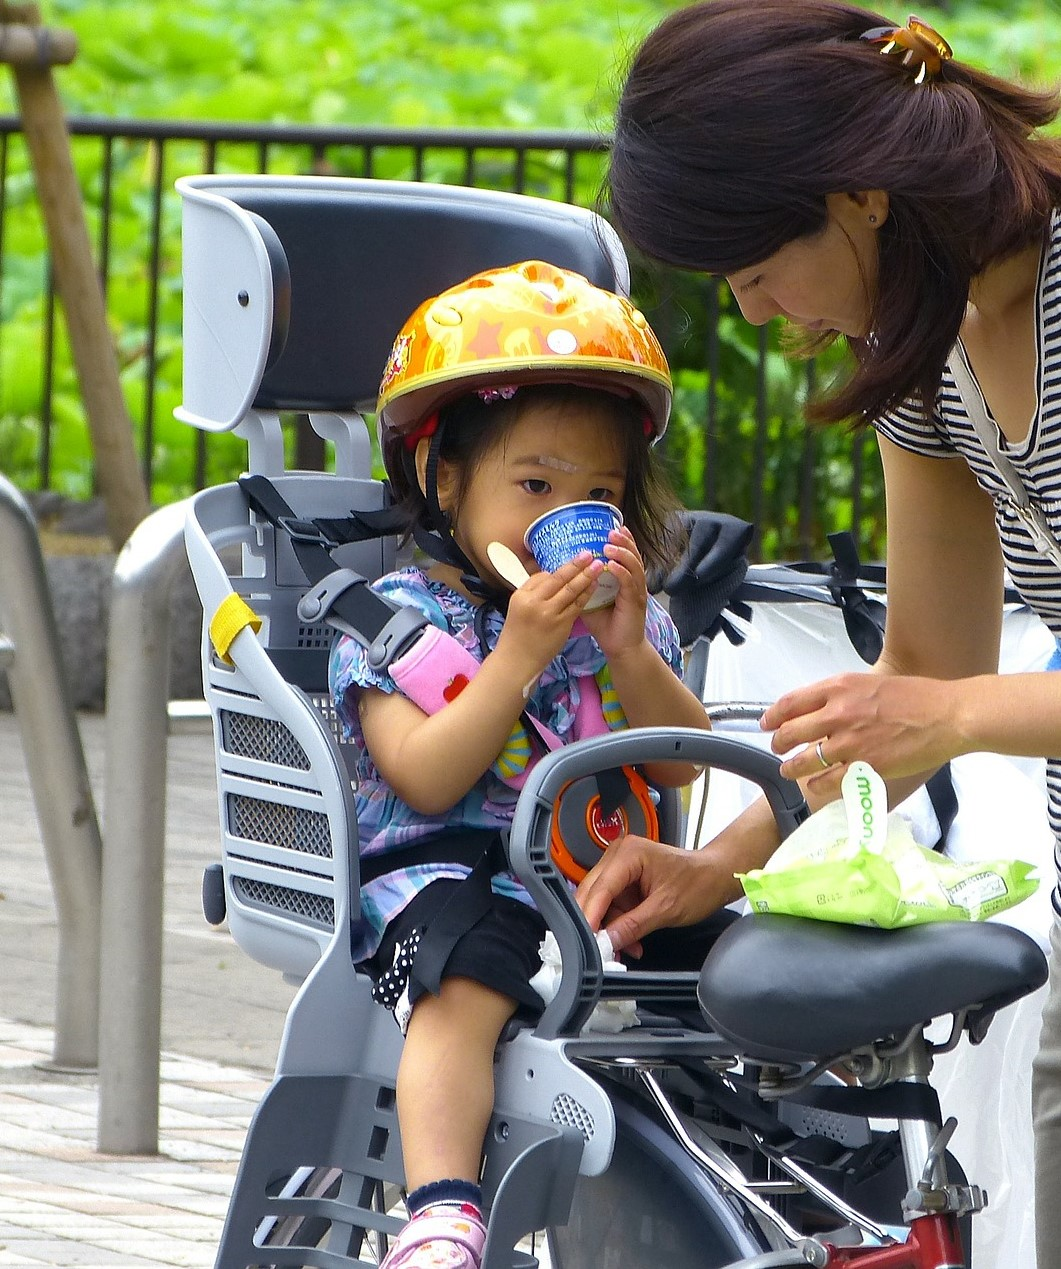 A child sits in a rear child seat while eating a tasty treat. An adult leans over them.